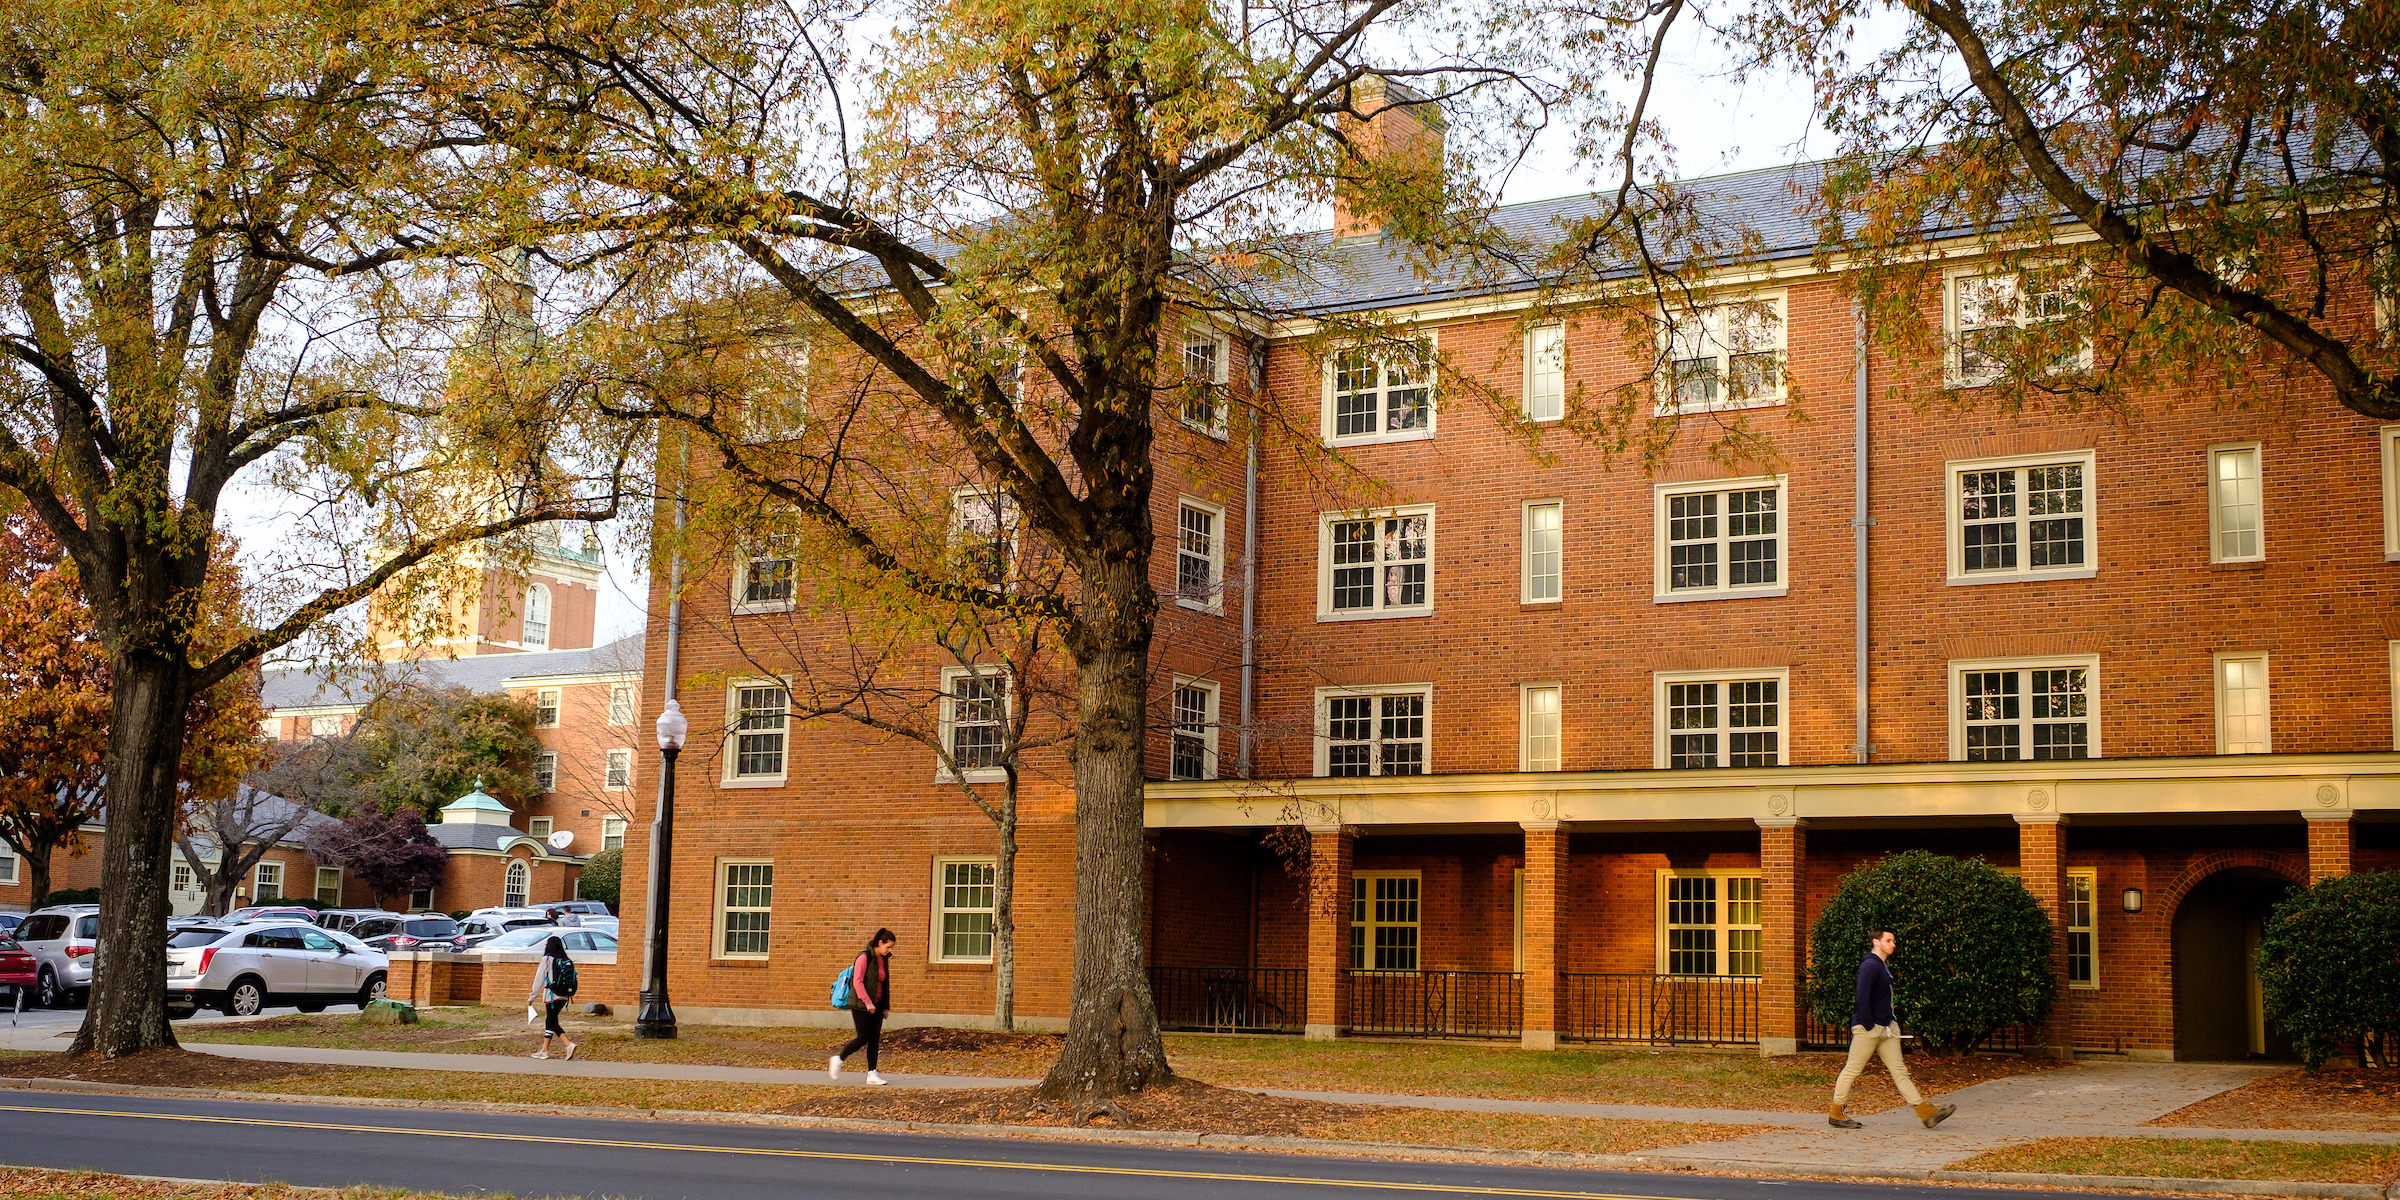 Street view of rear entrance to Taylor residence hall